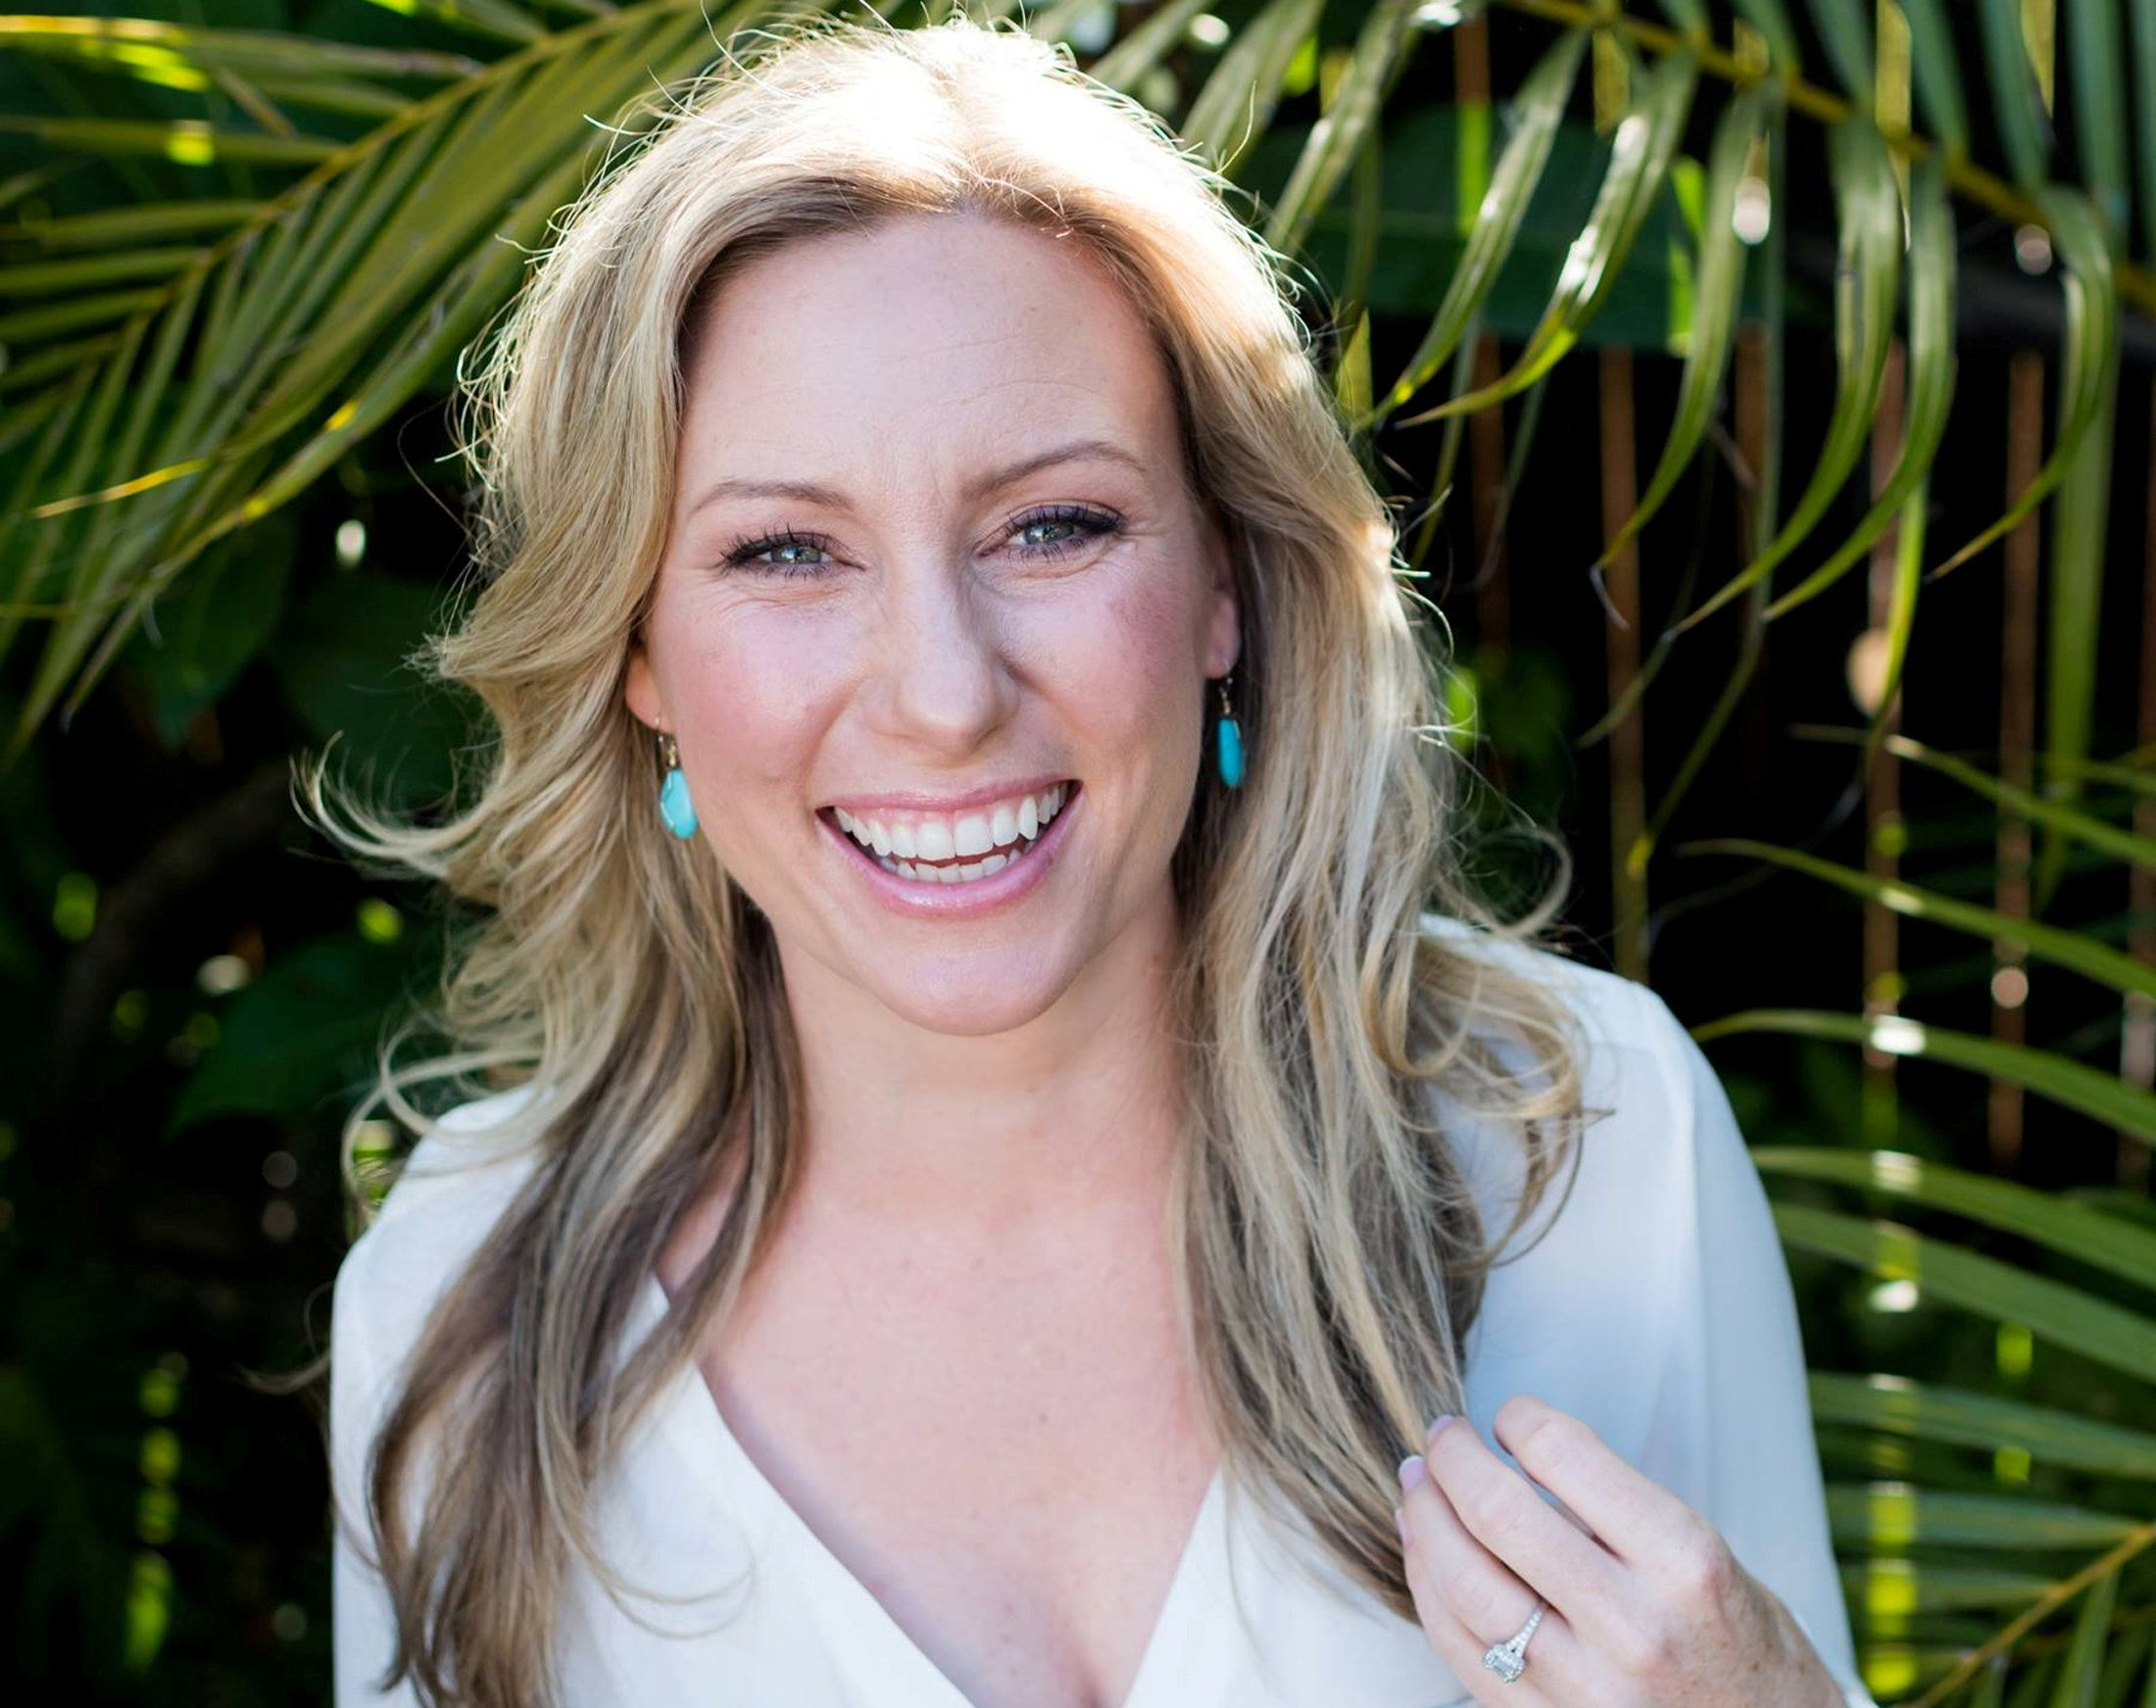 Justine Damond, also known as Justine Ruszczyk, from Sydney, is seen in this 2015 photo released by Stephen Govel Photography in New York, U.S., on July 17, 2017.   Courtesy Stephen Govel/Stephen Govel Photography/Handout via REUTERS  ATTENTION EDITORS - THIS IMAGE WAS PROVIDED BY A THIRD PARTY. MANDATORY CREDIT.     TPX IMAGES OF THE DAY